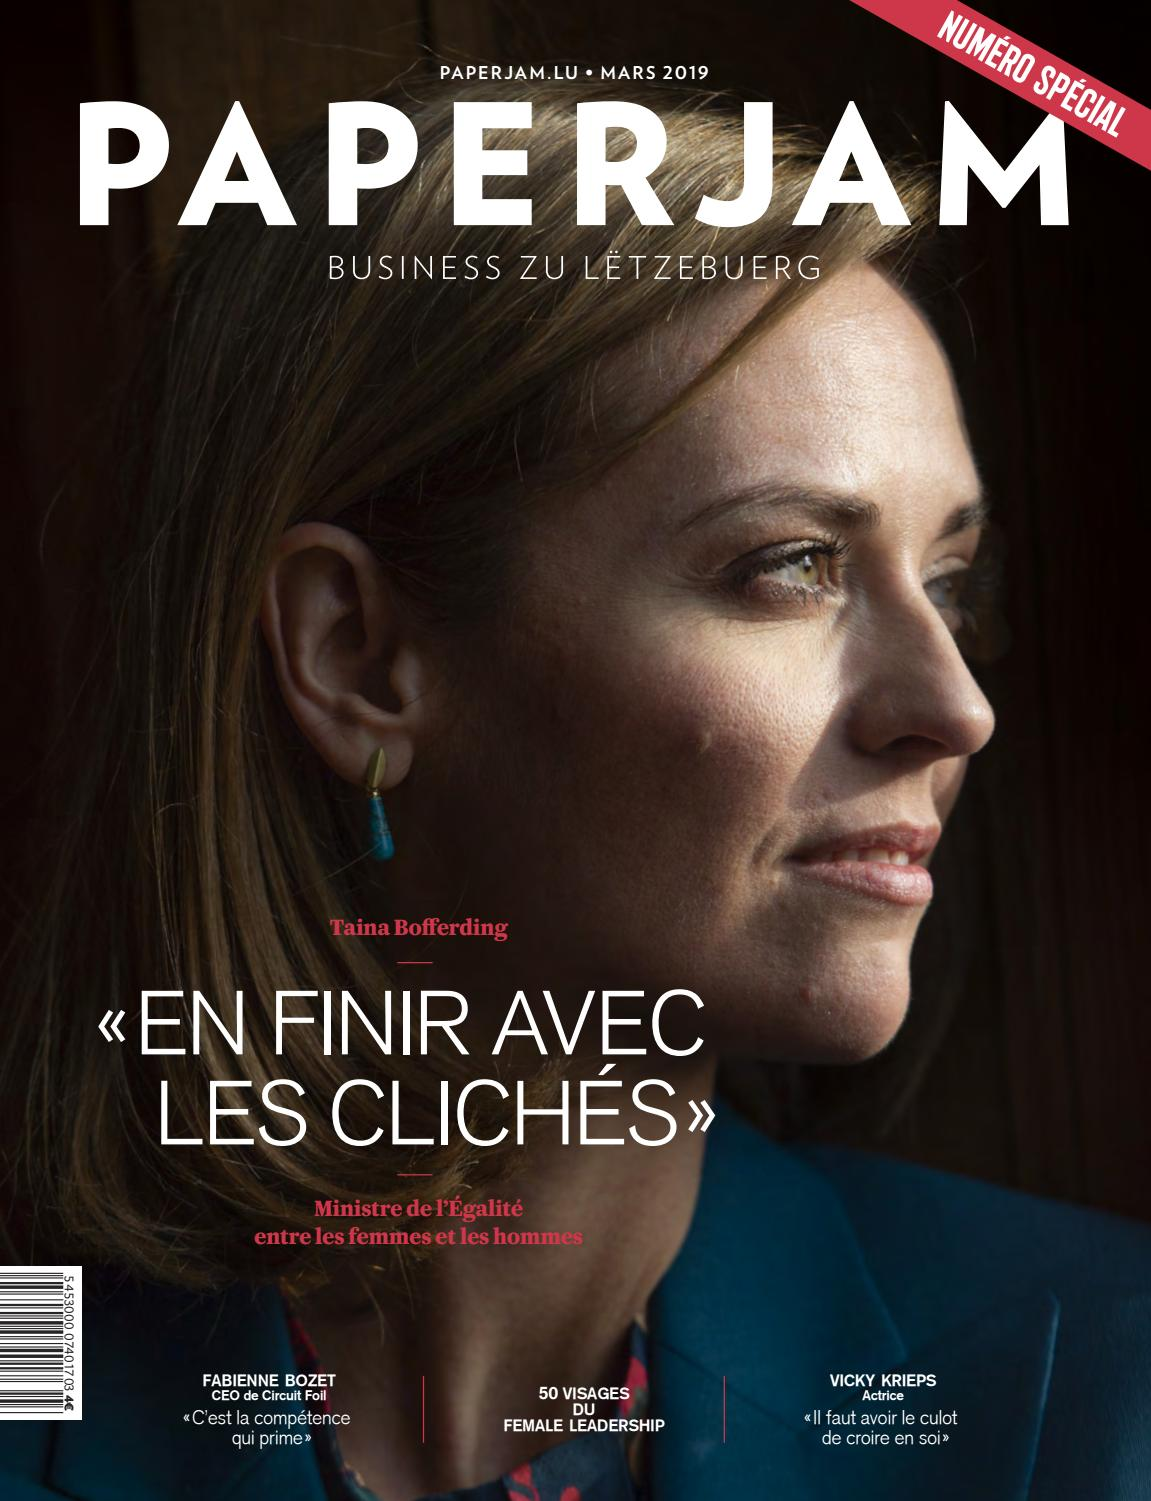 new concept c1113 7e3be PAPERJAM MARS 2019 by Maison Moderne - issuu